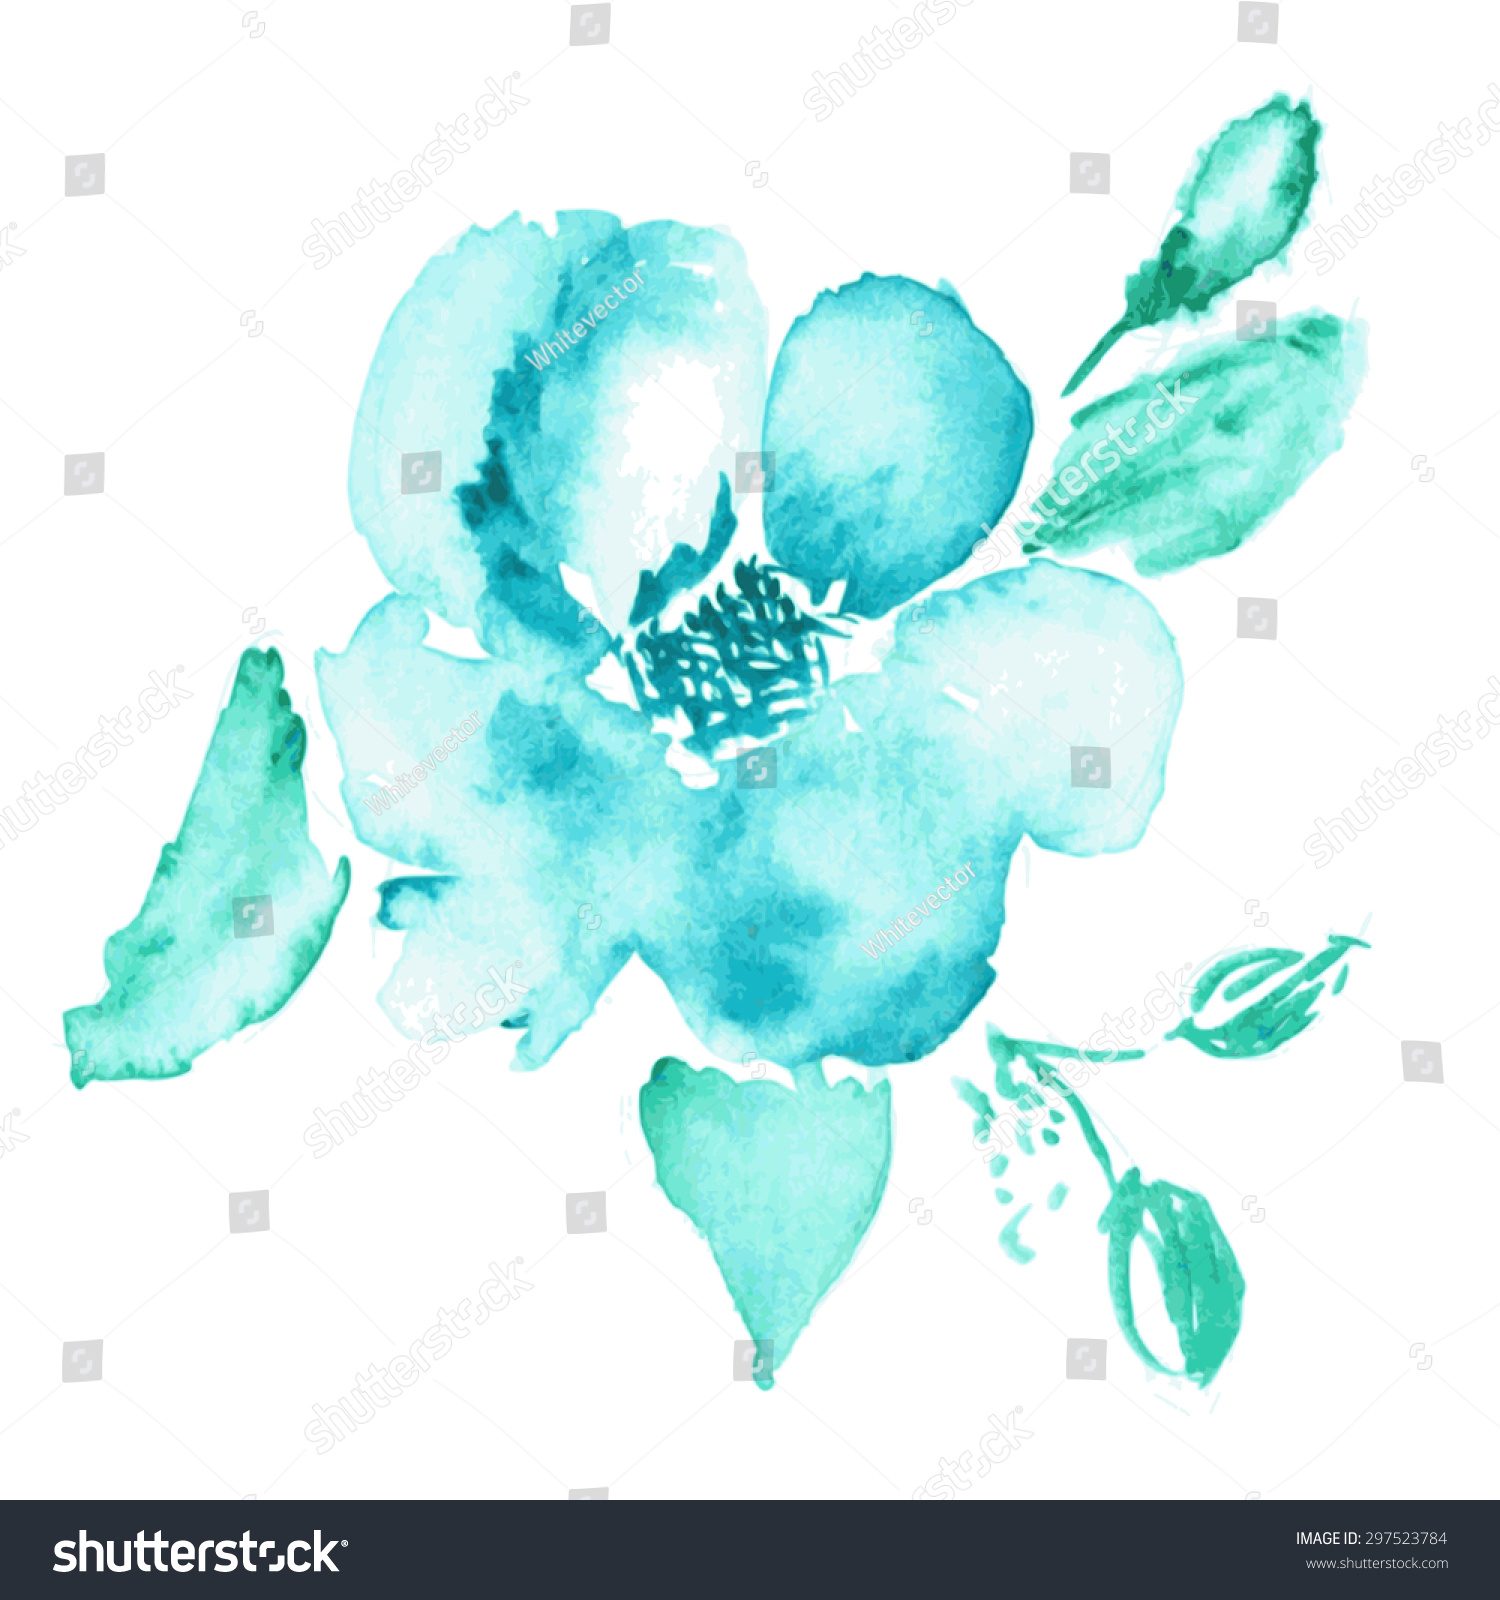 Vector Floral Background Watercolor Floral Illustration The Arts